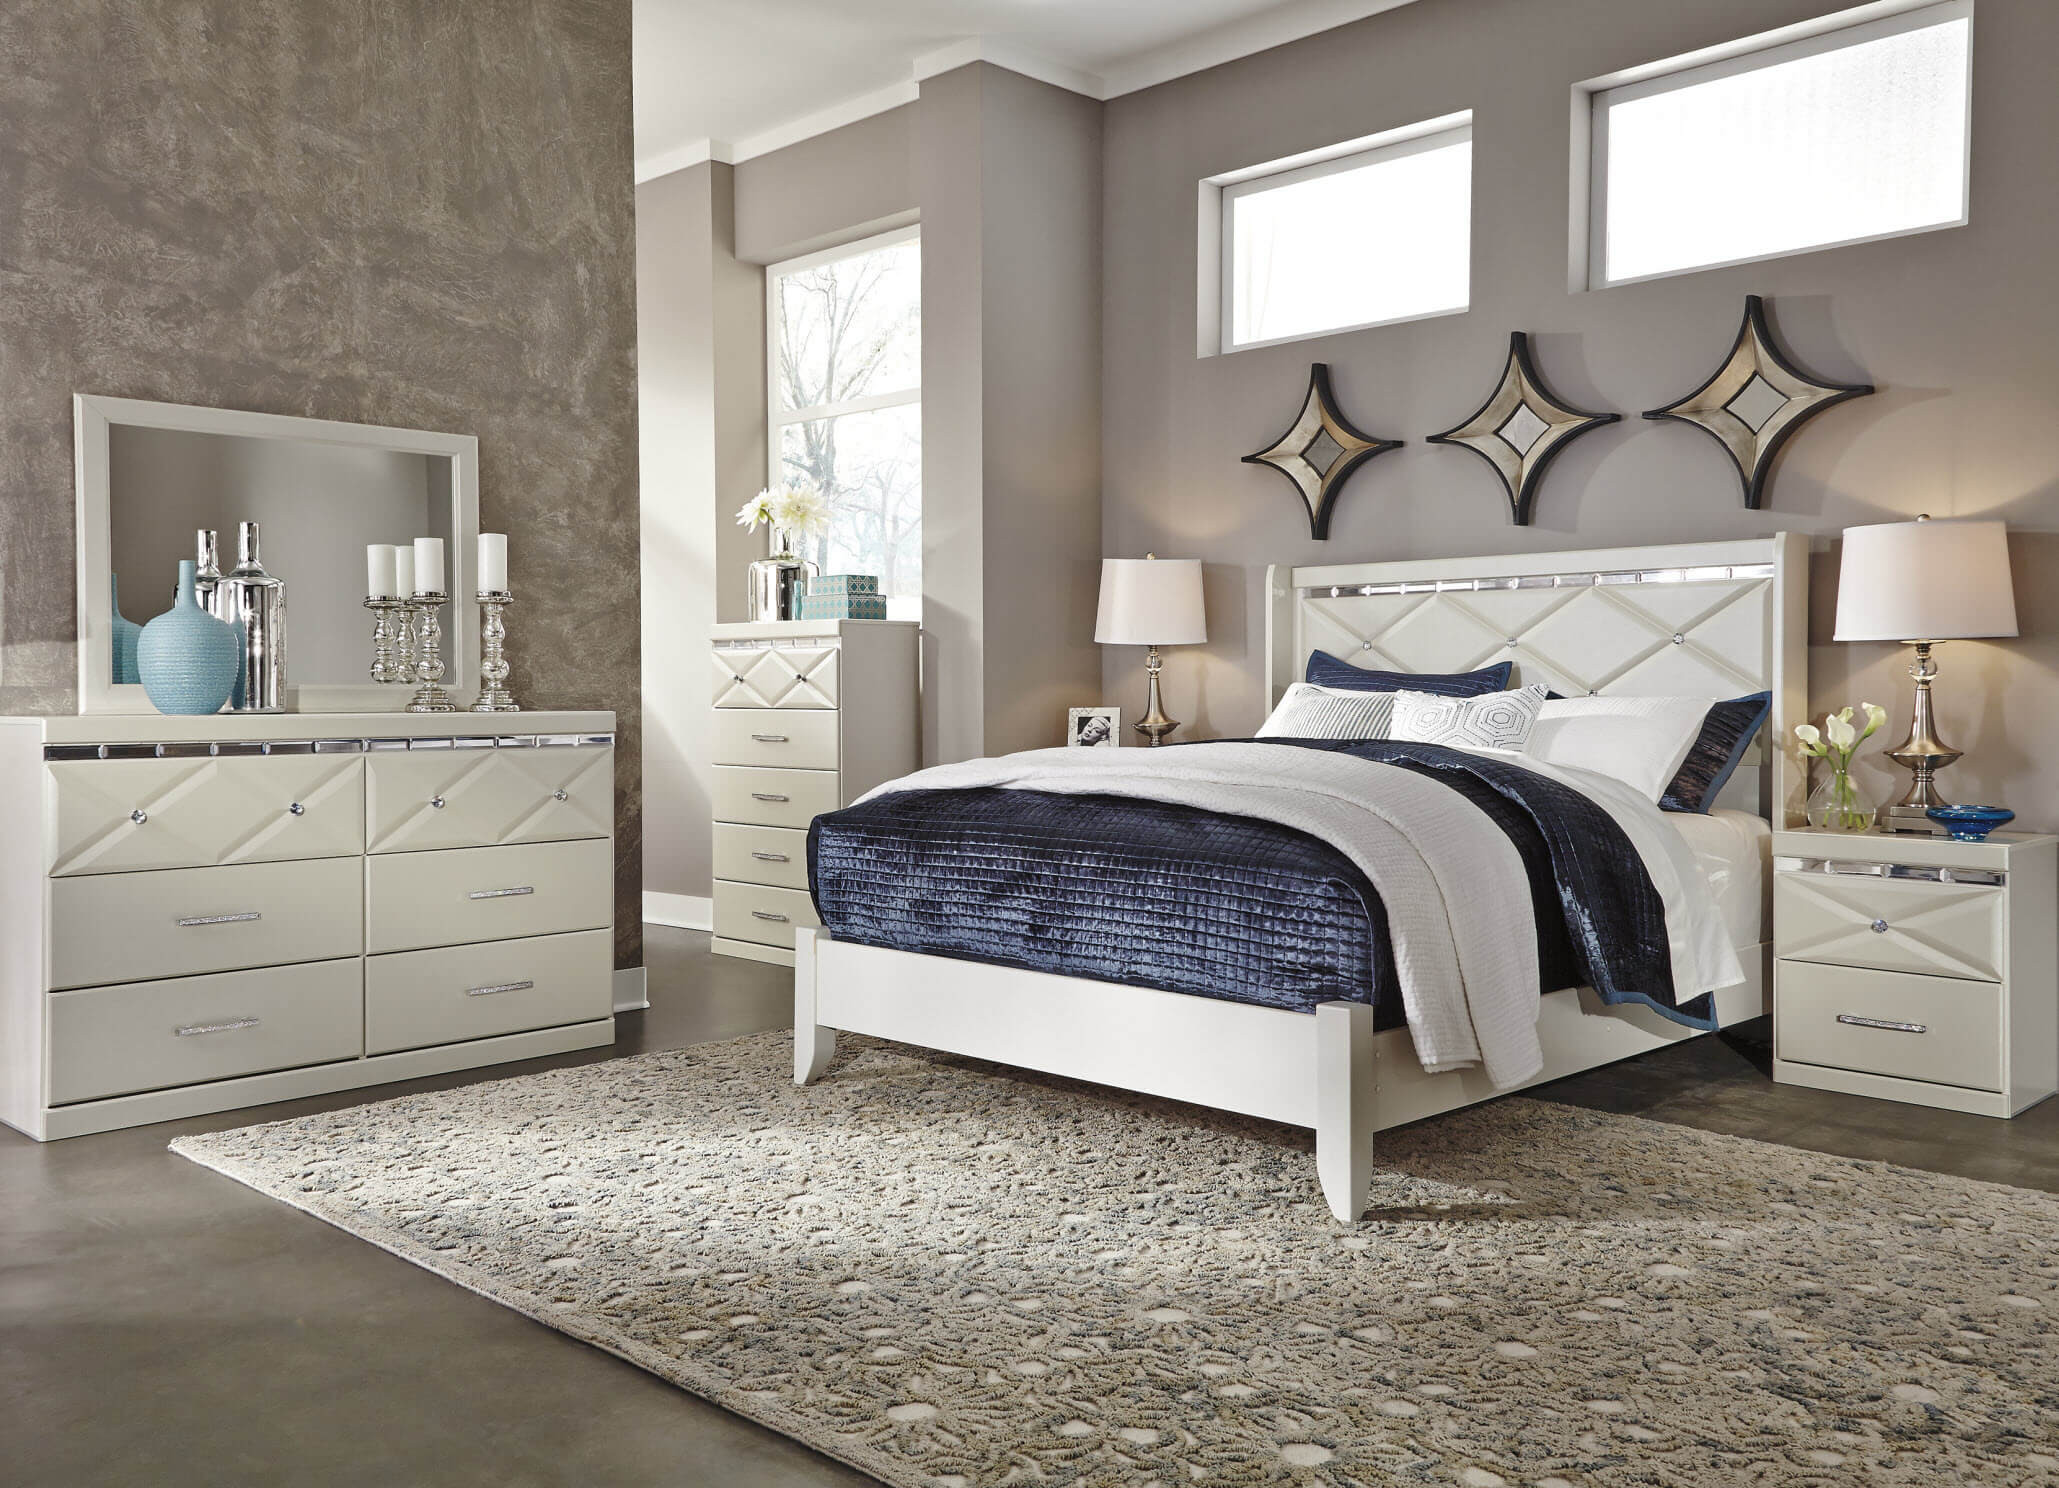 Best ideas about Ashley Bedroom Sets . Save or Pin Ashley Dreamer Bedroom Set Now.